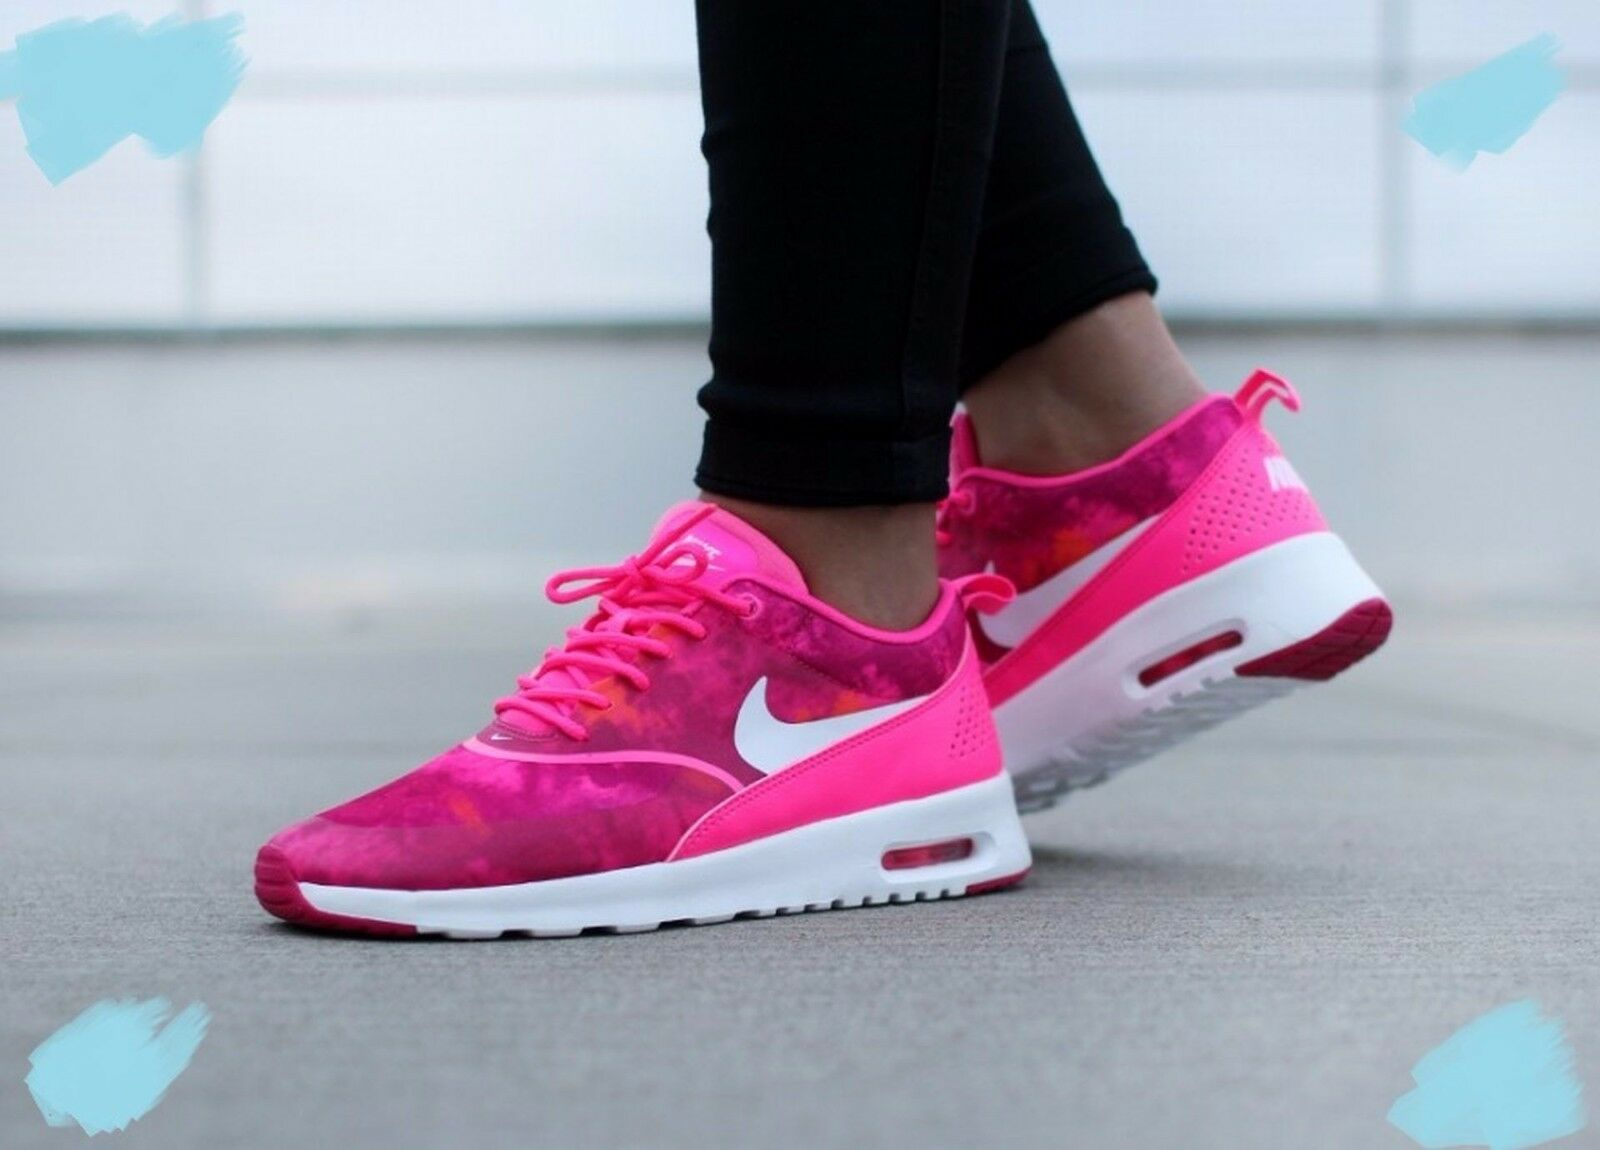 NIKE Air Max Thea Print Wmns Shoes Size 9 599408-602 Pink Pow/White-Frbrry